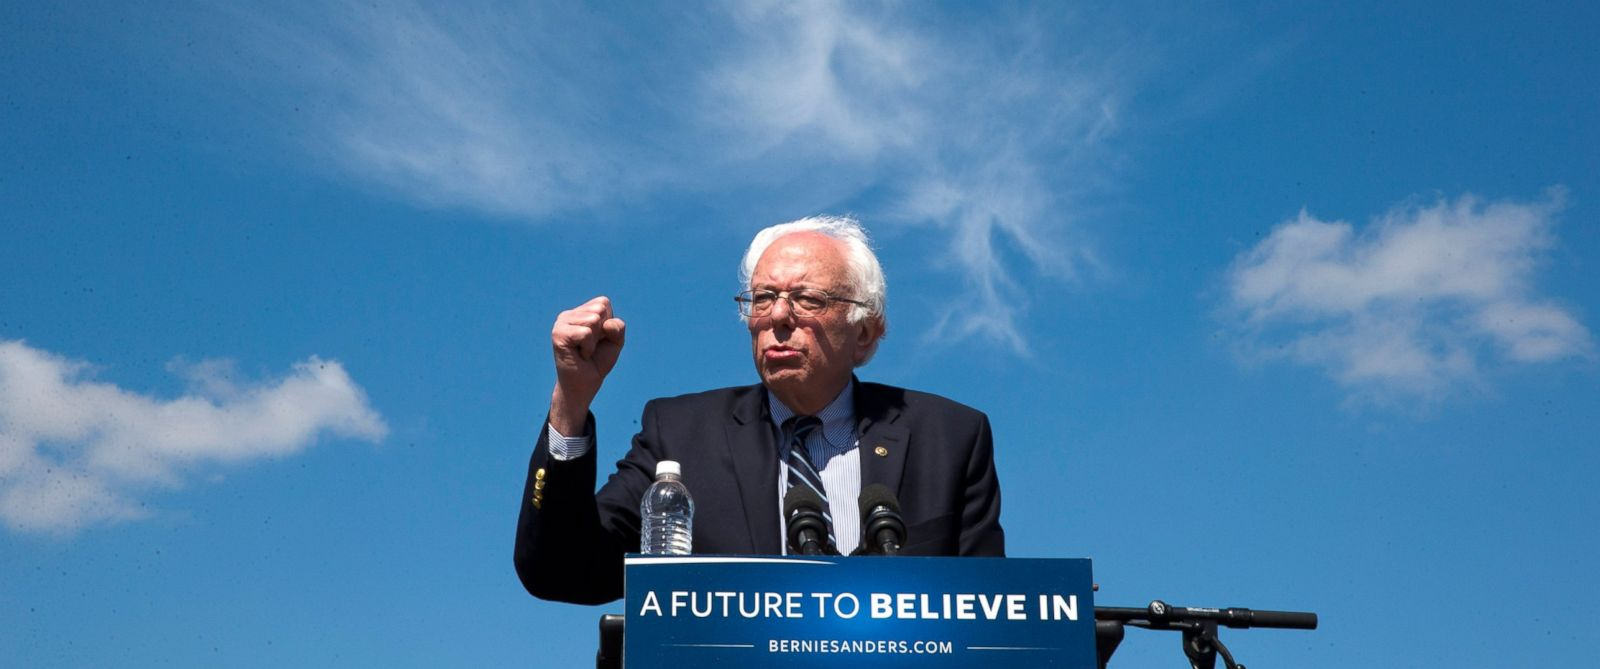 PHOTO: Democratic presidential candidate Sen. Bernie Sanders, I-Vt., speaks during a campaign rally at the Circuit of the Americas in Austin, Texas, Feb. 27, 2016.